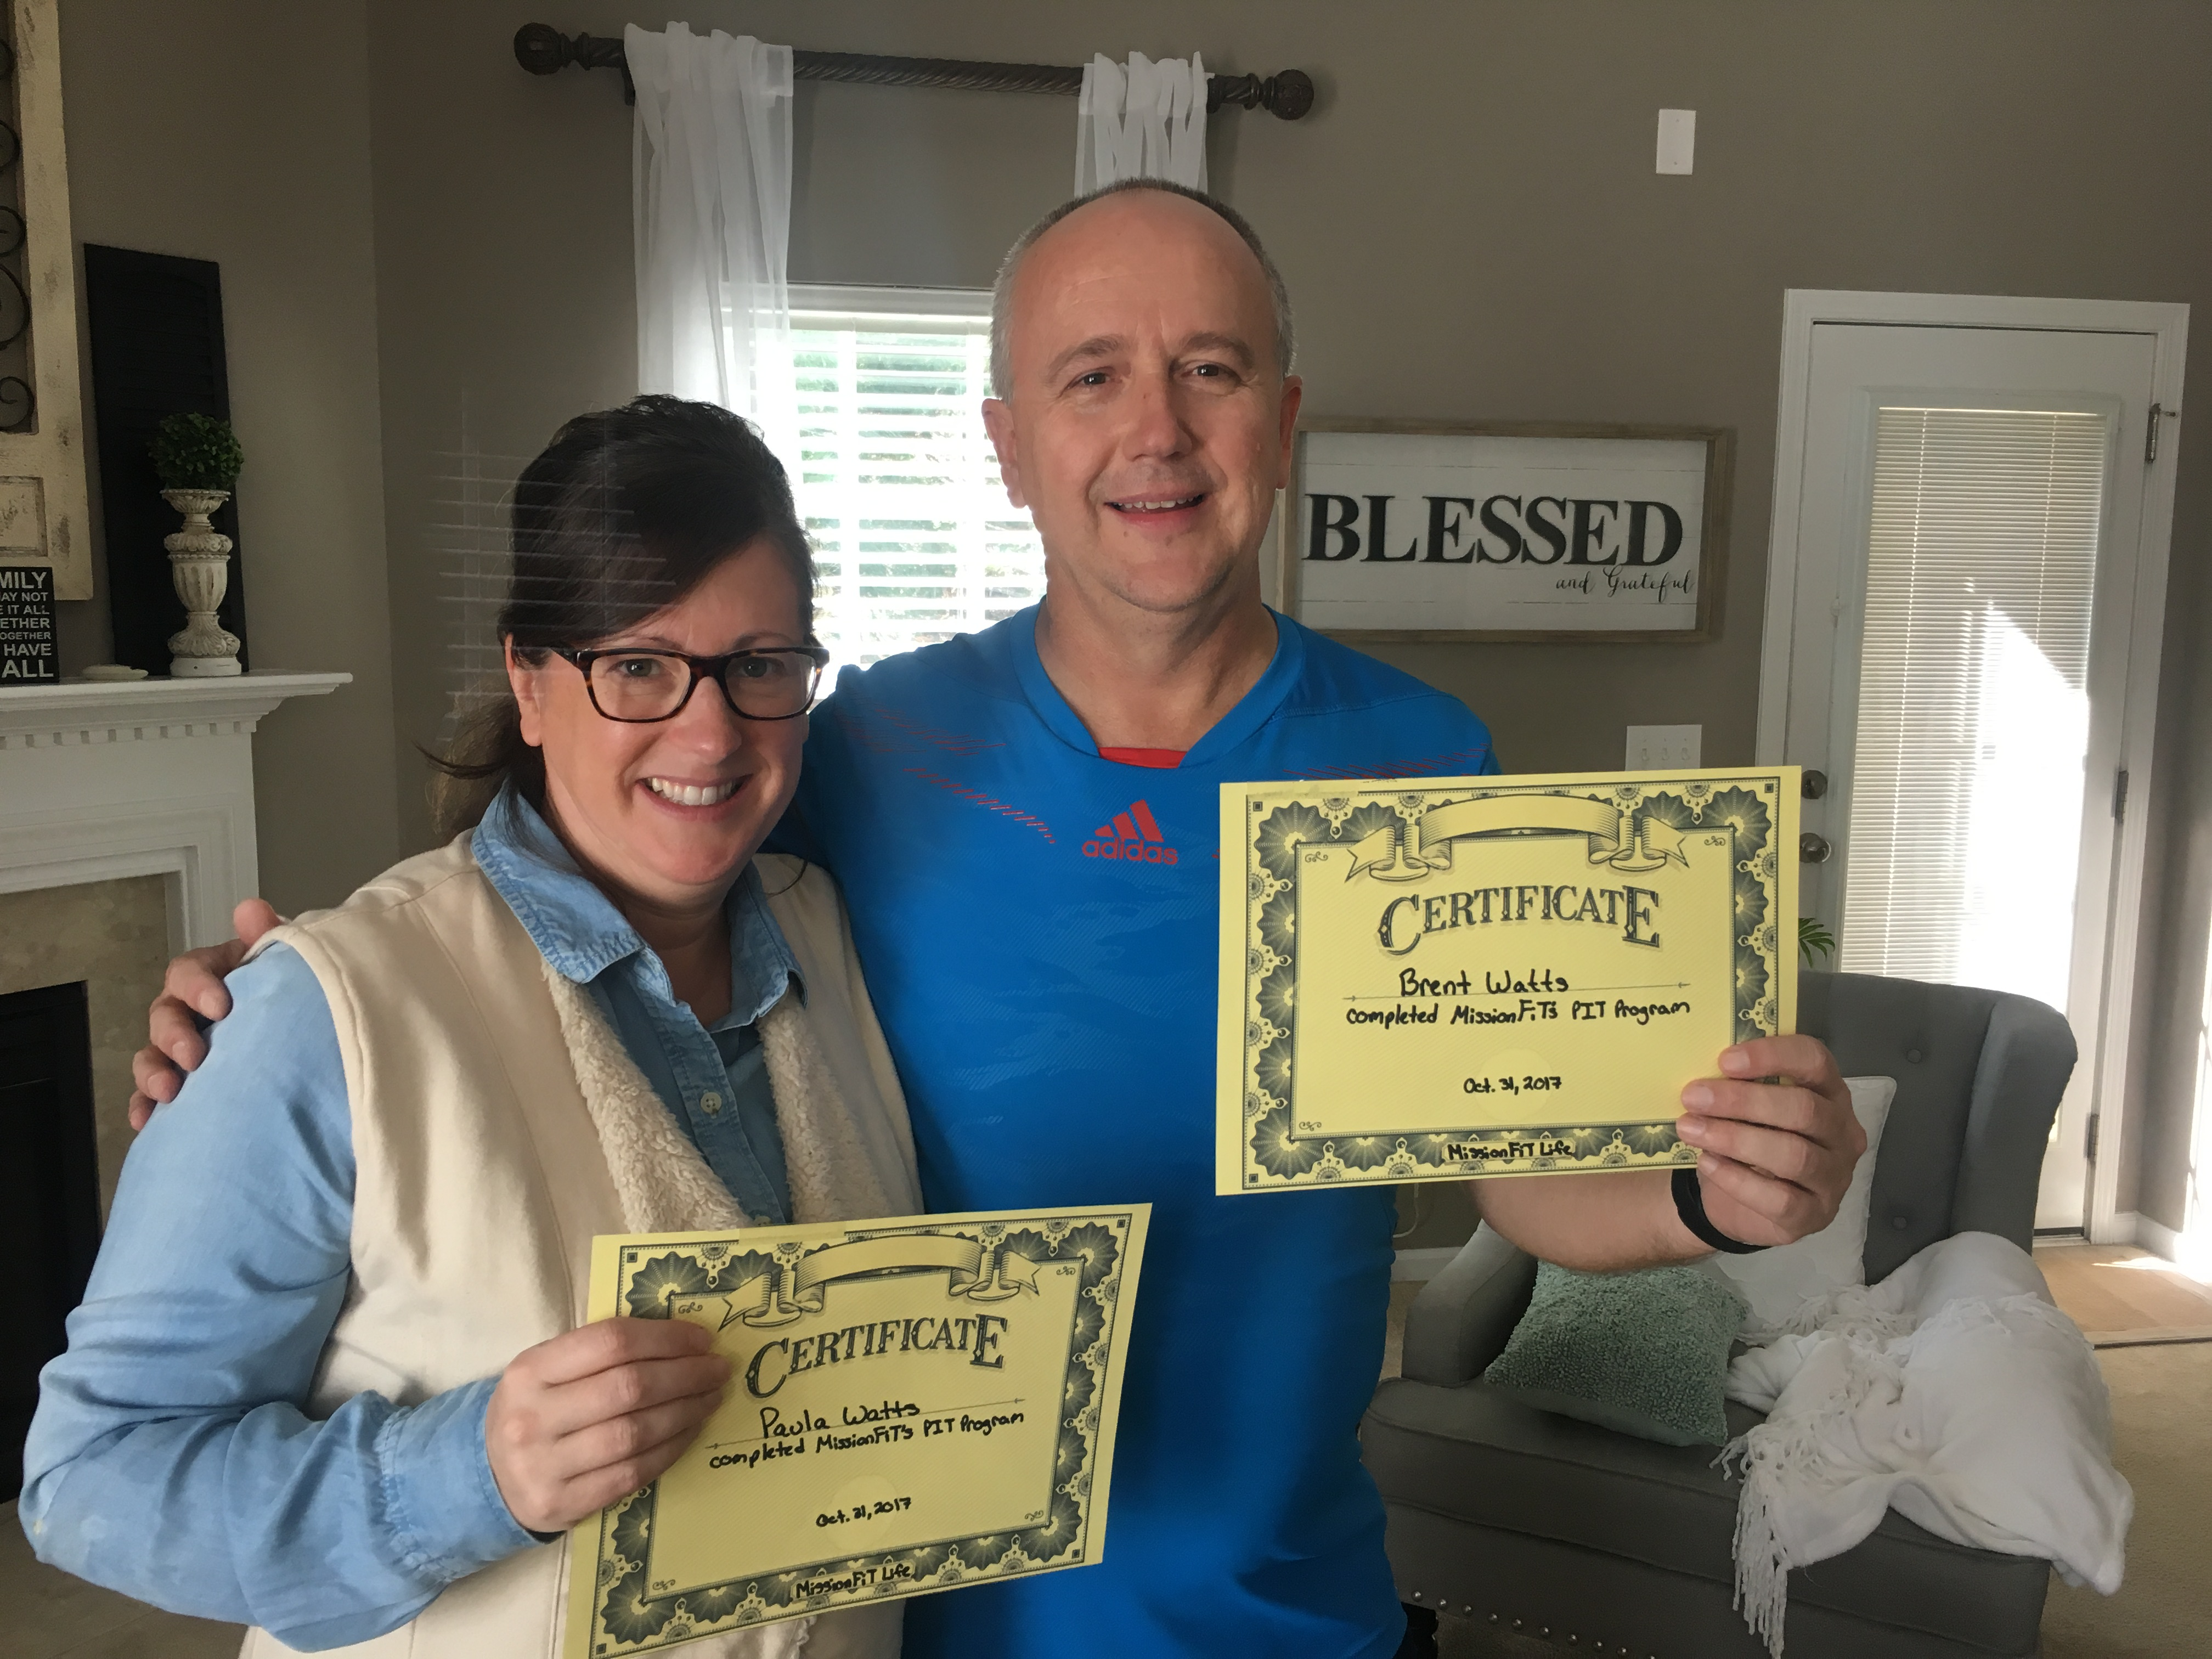 Today's Spotlight Athlete, Pastor Brent Watts, pastor brent in a blue t-shirt and Paula in a blue shirt with white vest holding their completion certificates smiling